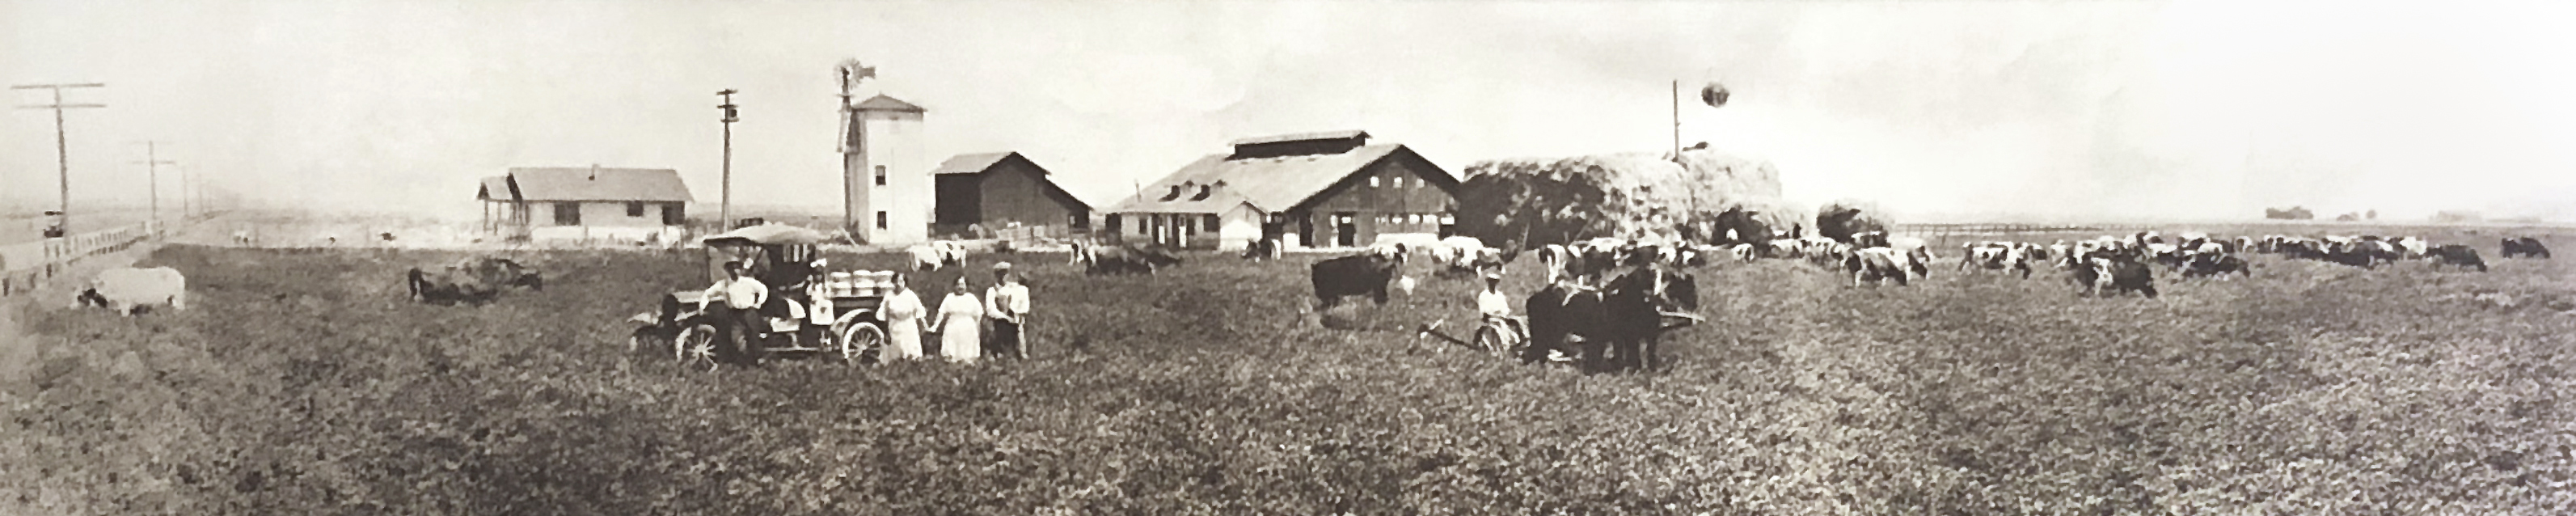 Old photo of Toste family on their dairy farm, pre-World War II